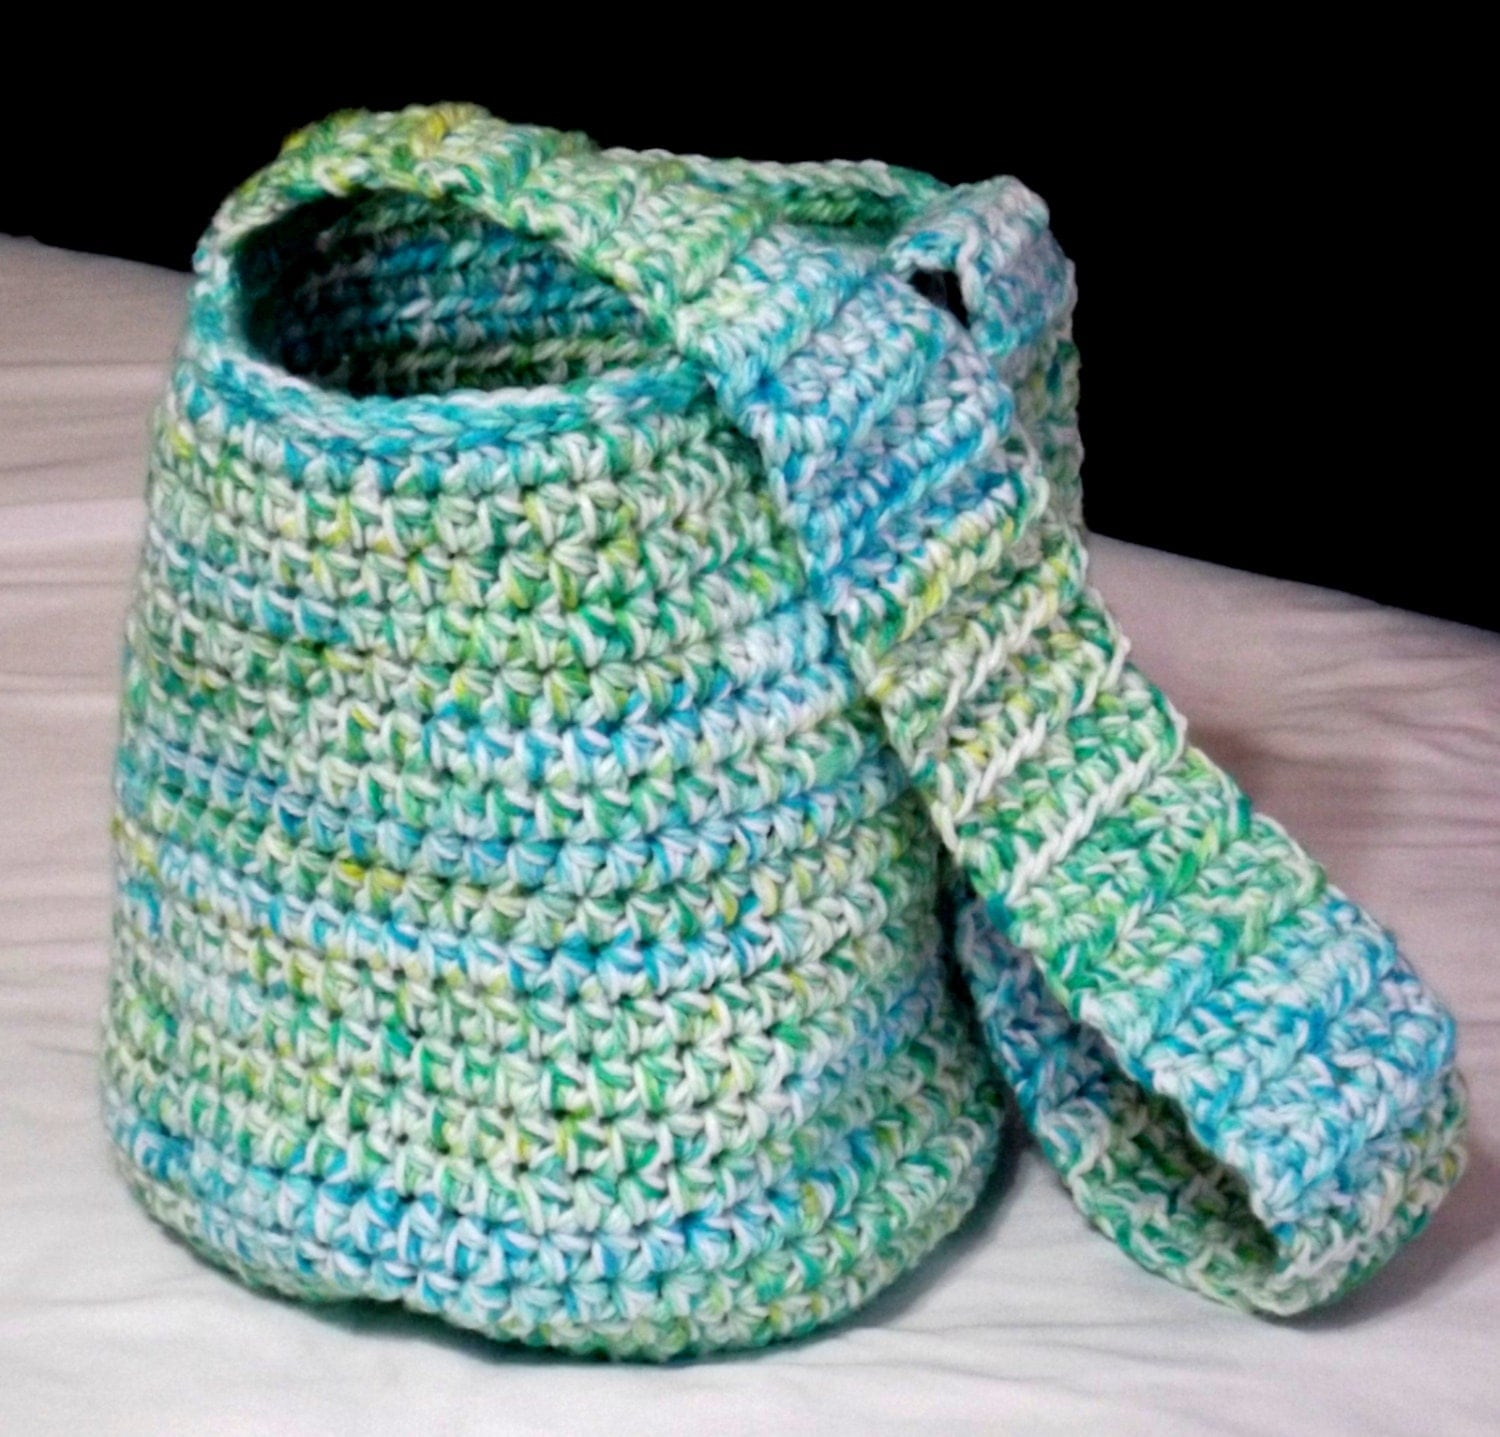 Crochet Shoulder Bag : Crochet Over the Shoulder Bag by ORDINARYCROCHET on Etsy